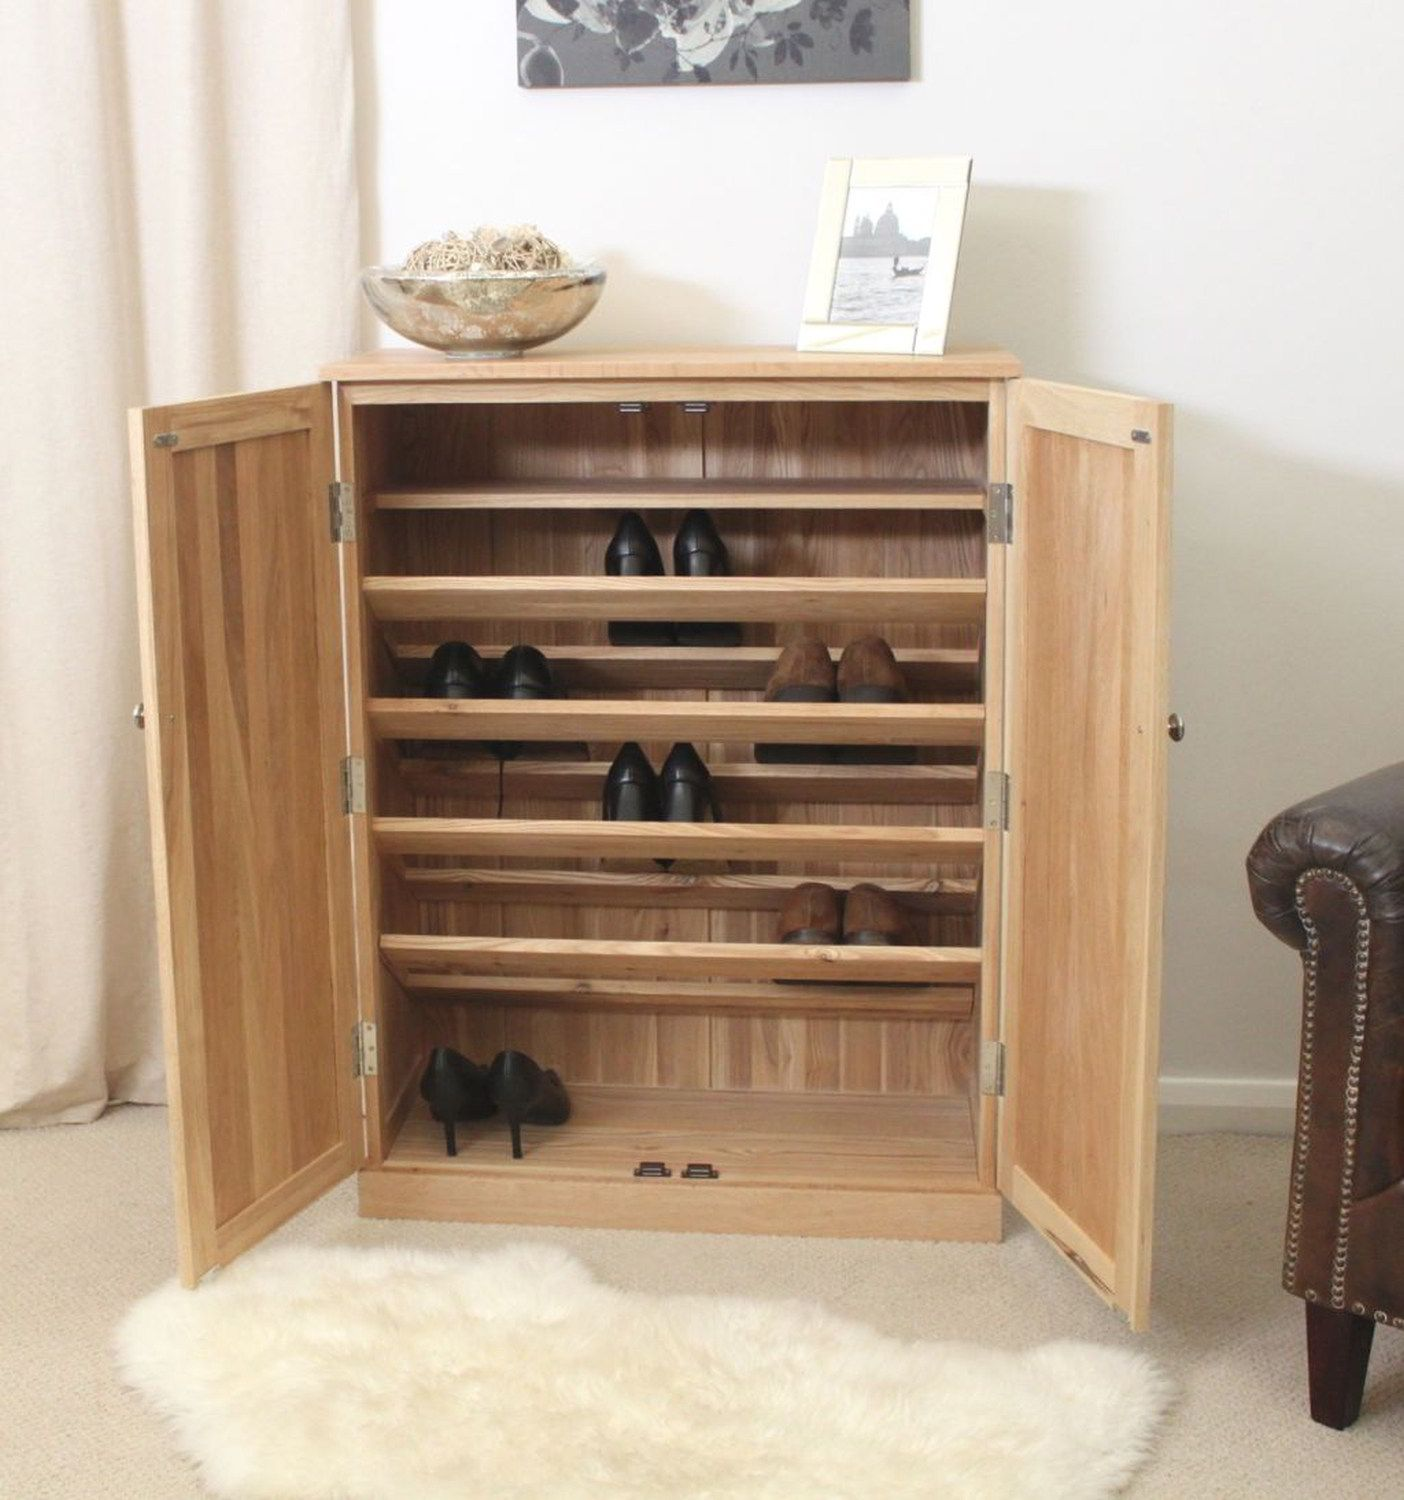 related ideas mobel oak. Mobel Oak Large Shoe Cupboard Superb Contemporary Part Of Our Innovative Hallway Storage Range This Unit Has Four Shelves And Related Ideas A